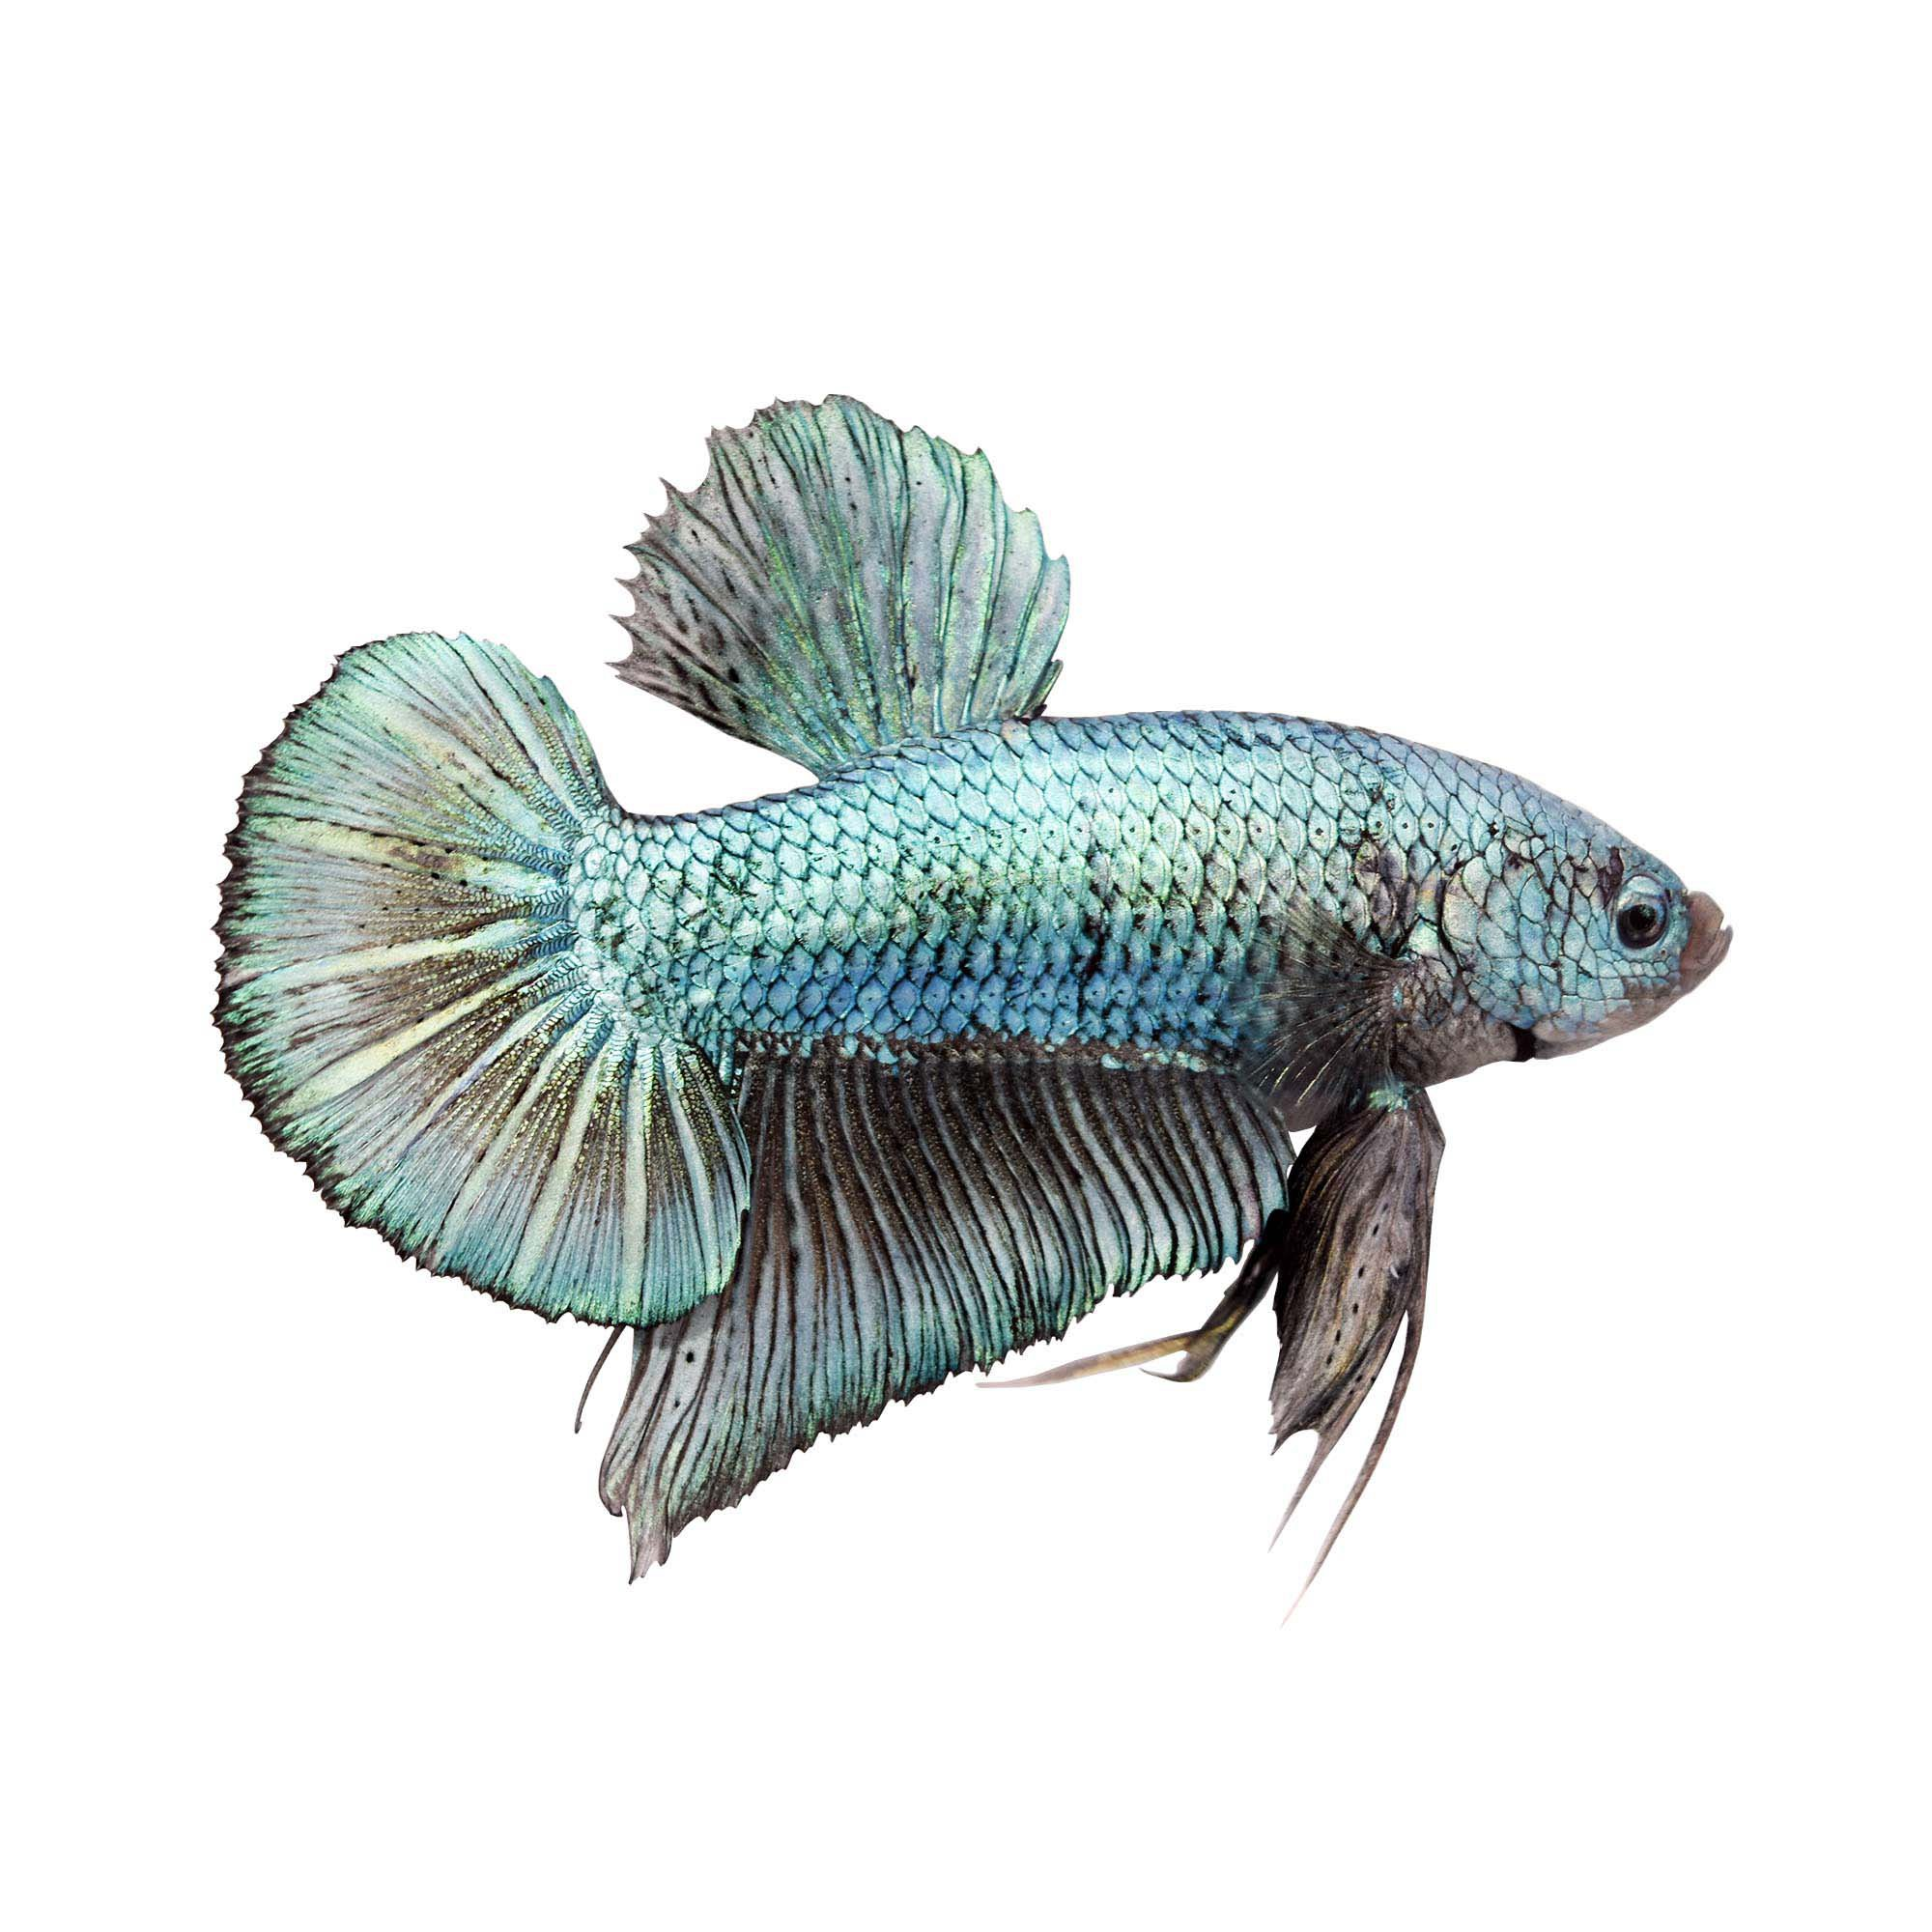 Male Halfmoon Plakat Betta Fish Petco